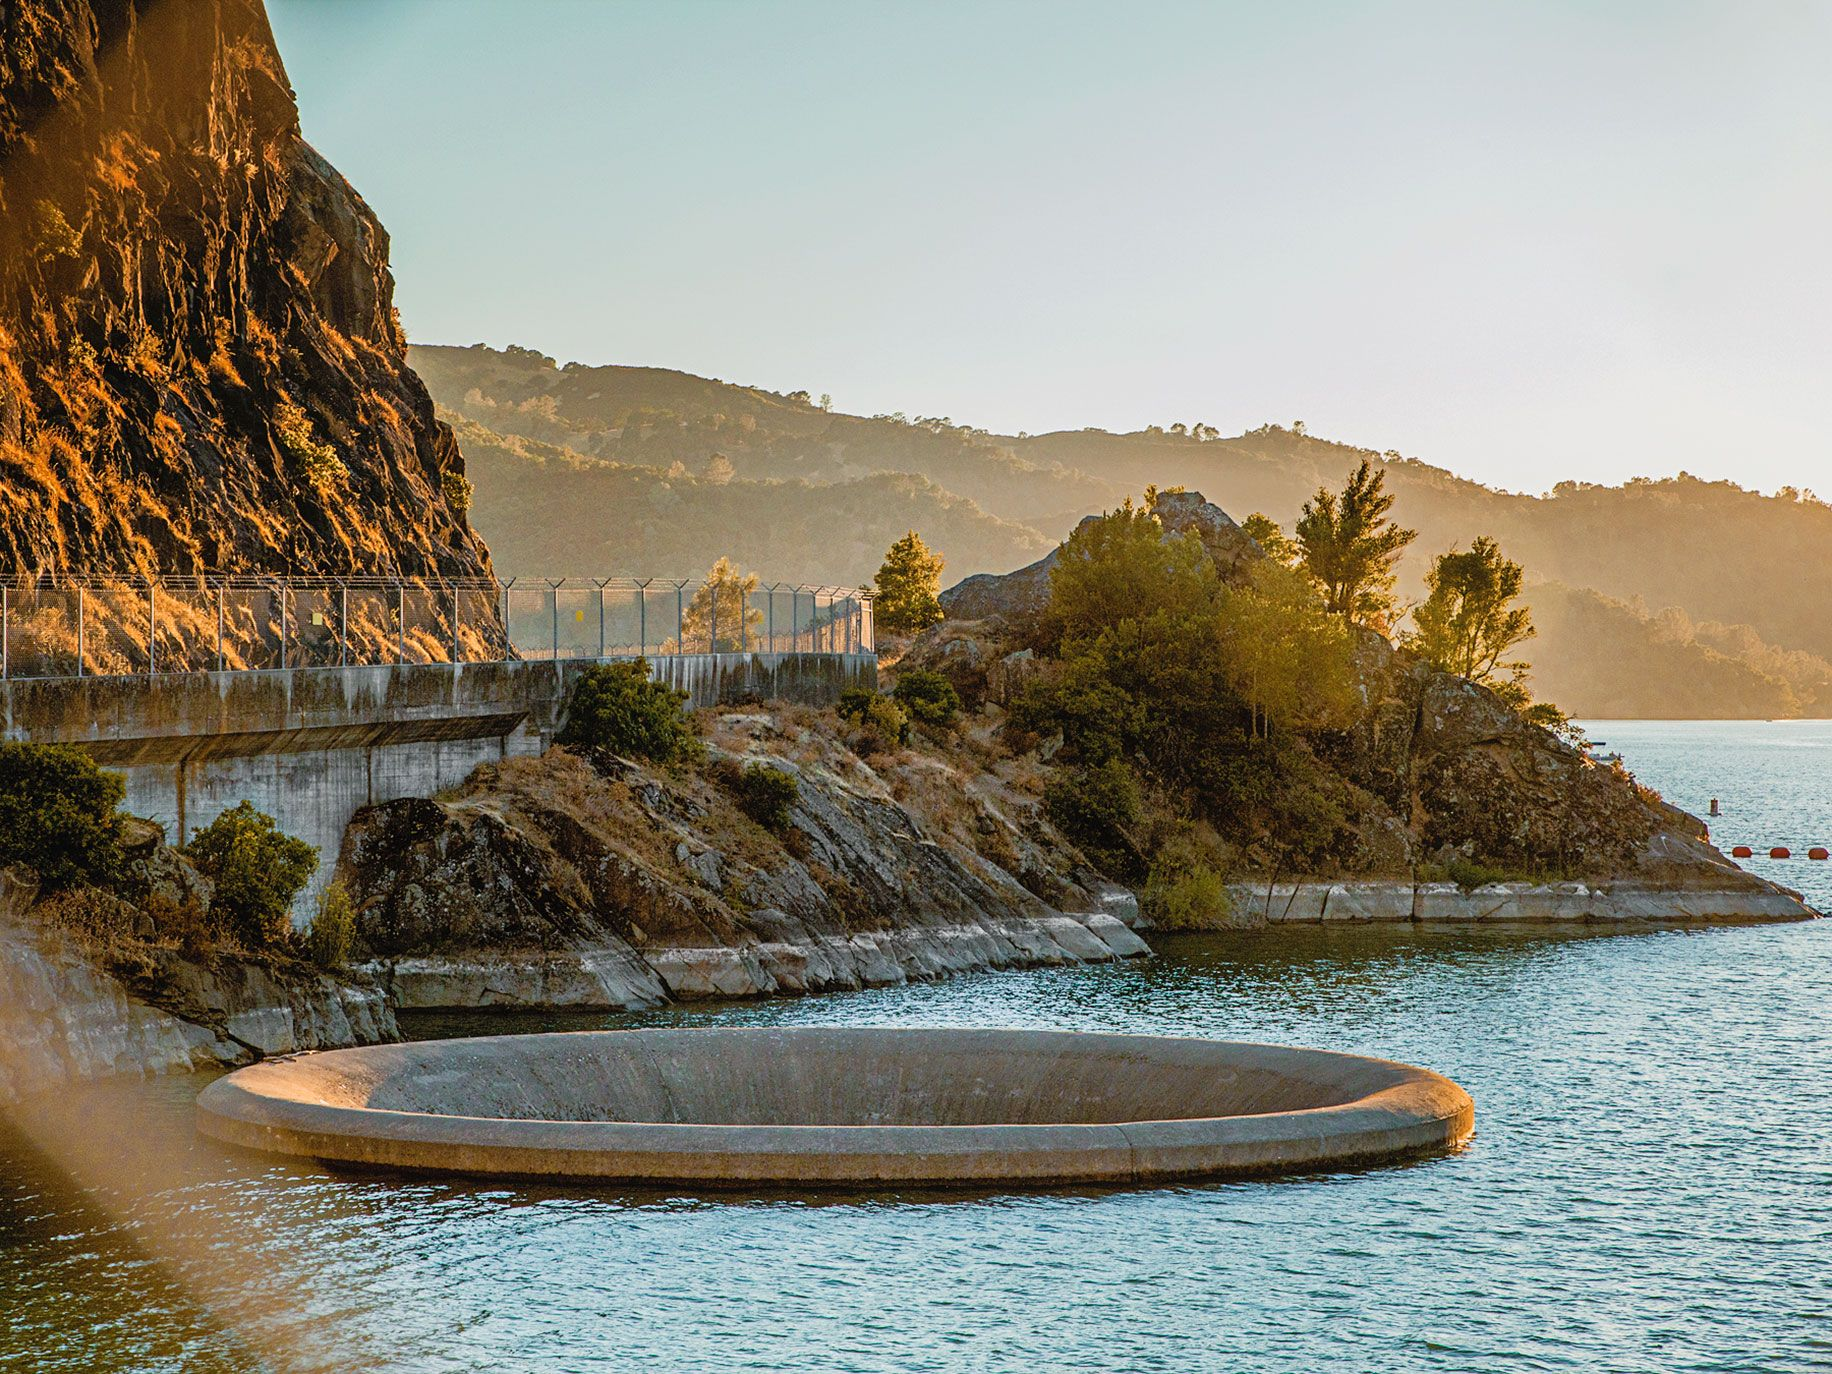 """Instead of a floodgate, the Monticello Dam releases water through a 72-foot-wide """"Glory Hole."""""""